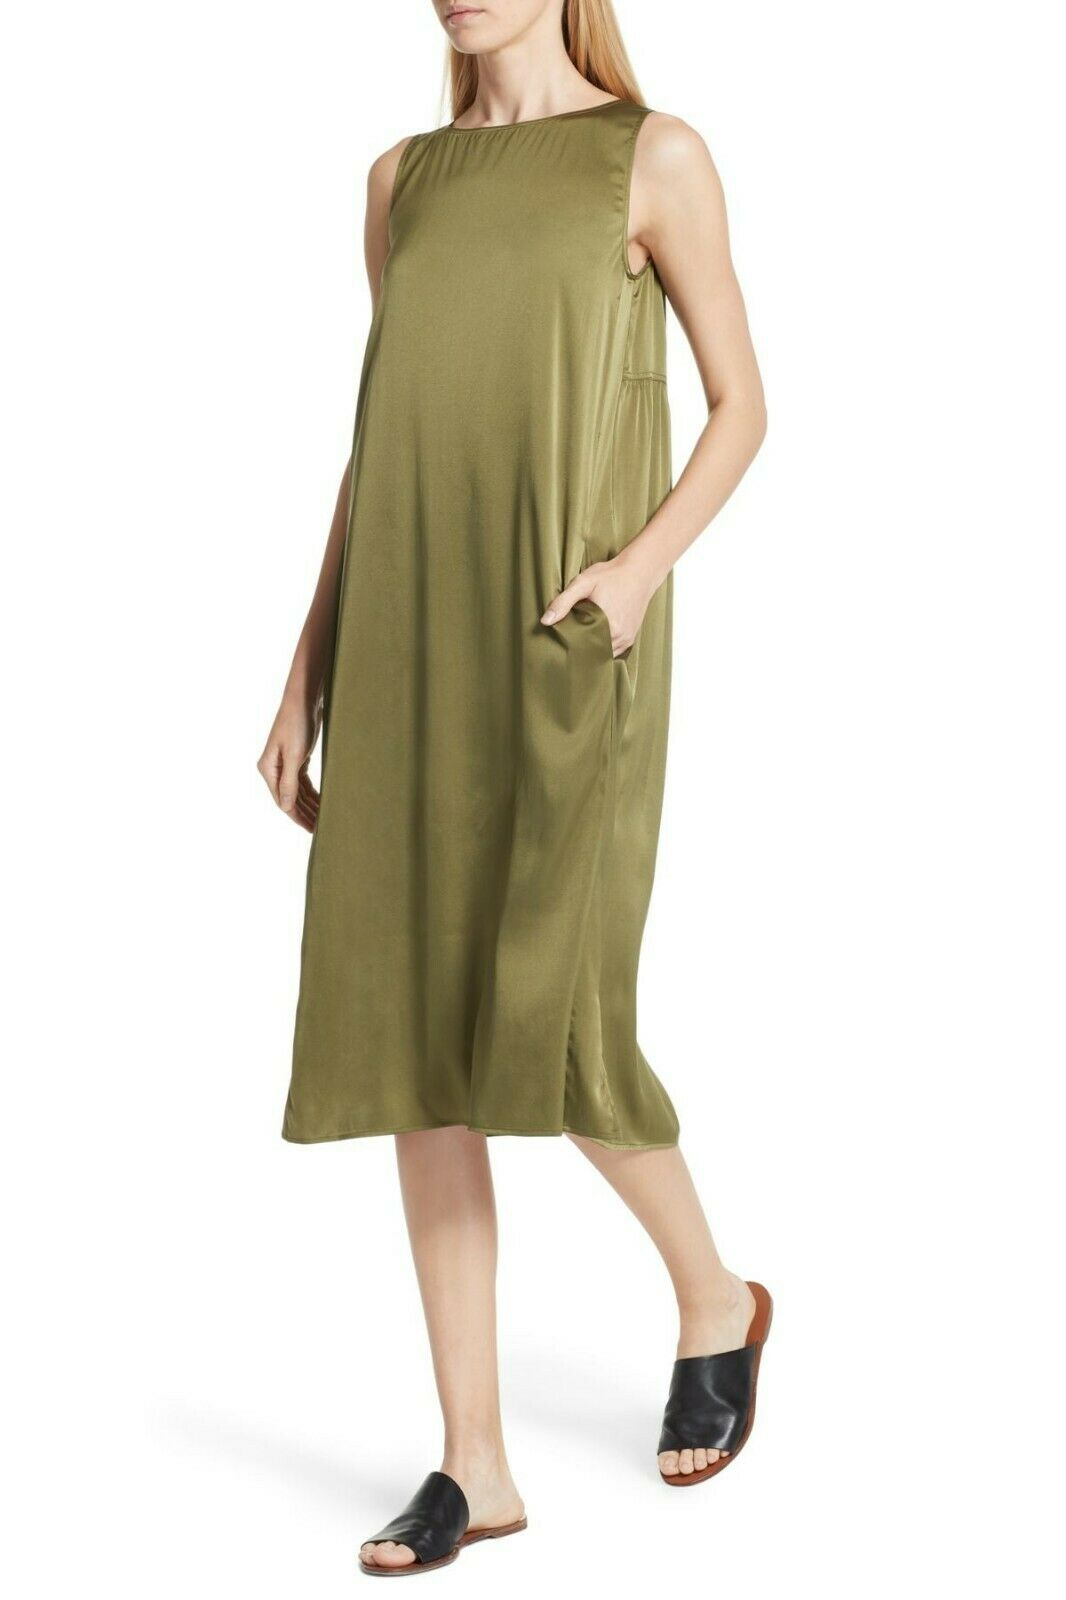 Eileen Fisher Olive Stretch Silk Charmeuse Tank Dress Größe Large Orig